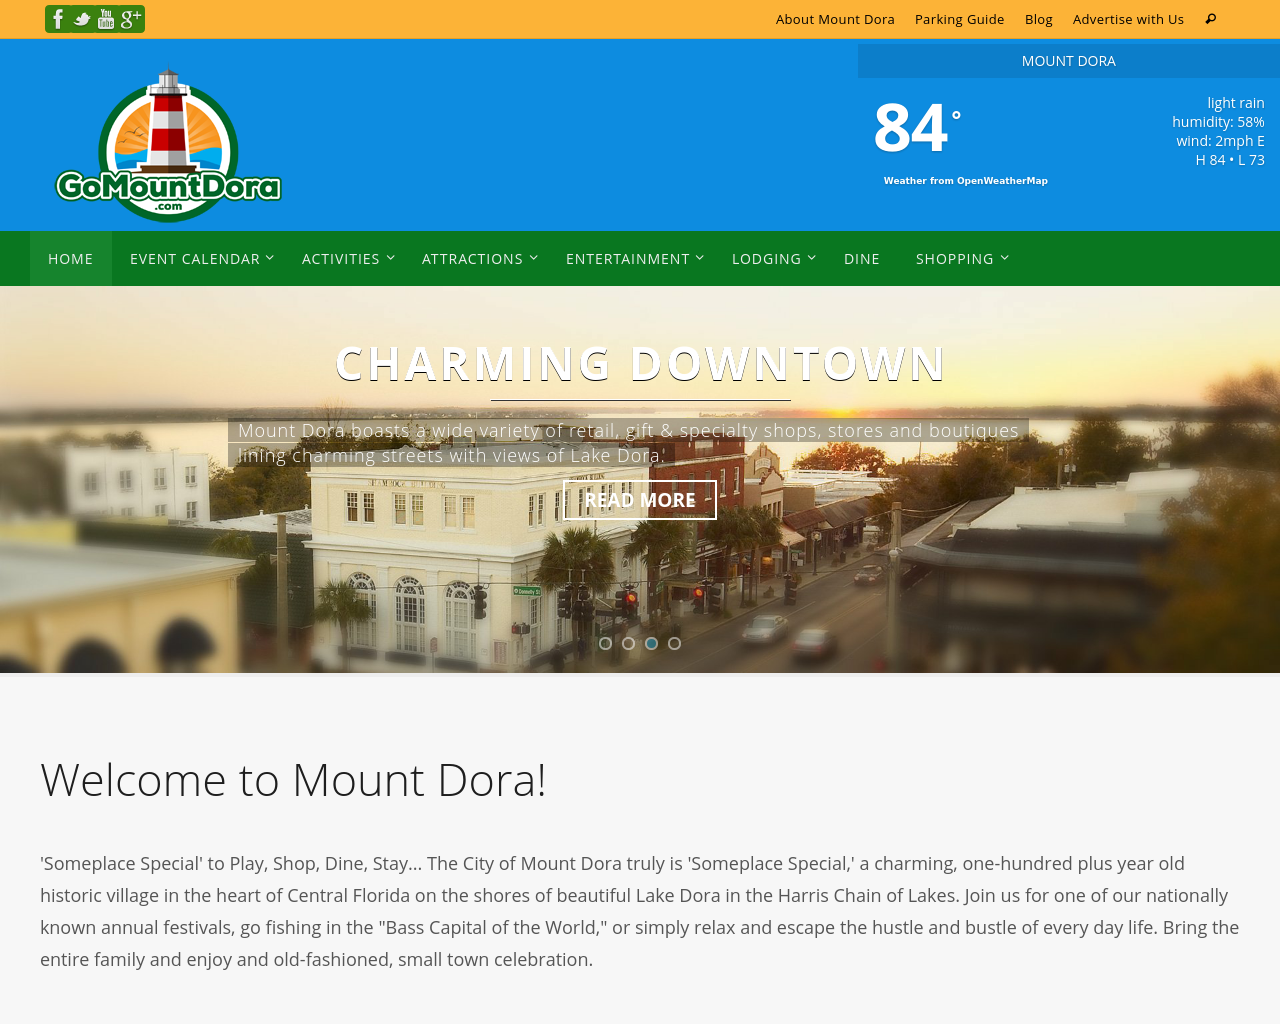 What-To-Do-In-Mount-Dora-Advertising-Reviews-Pricing